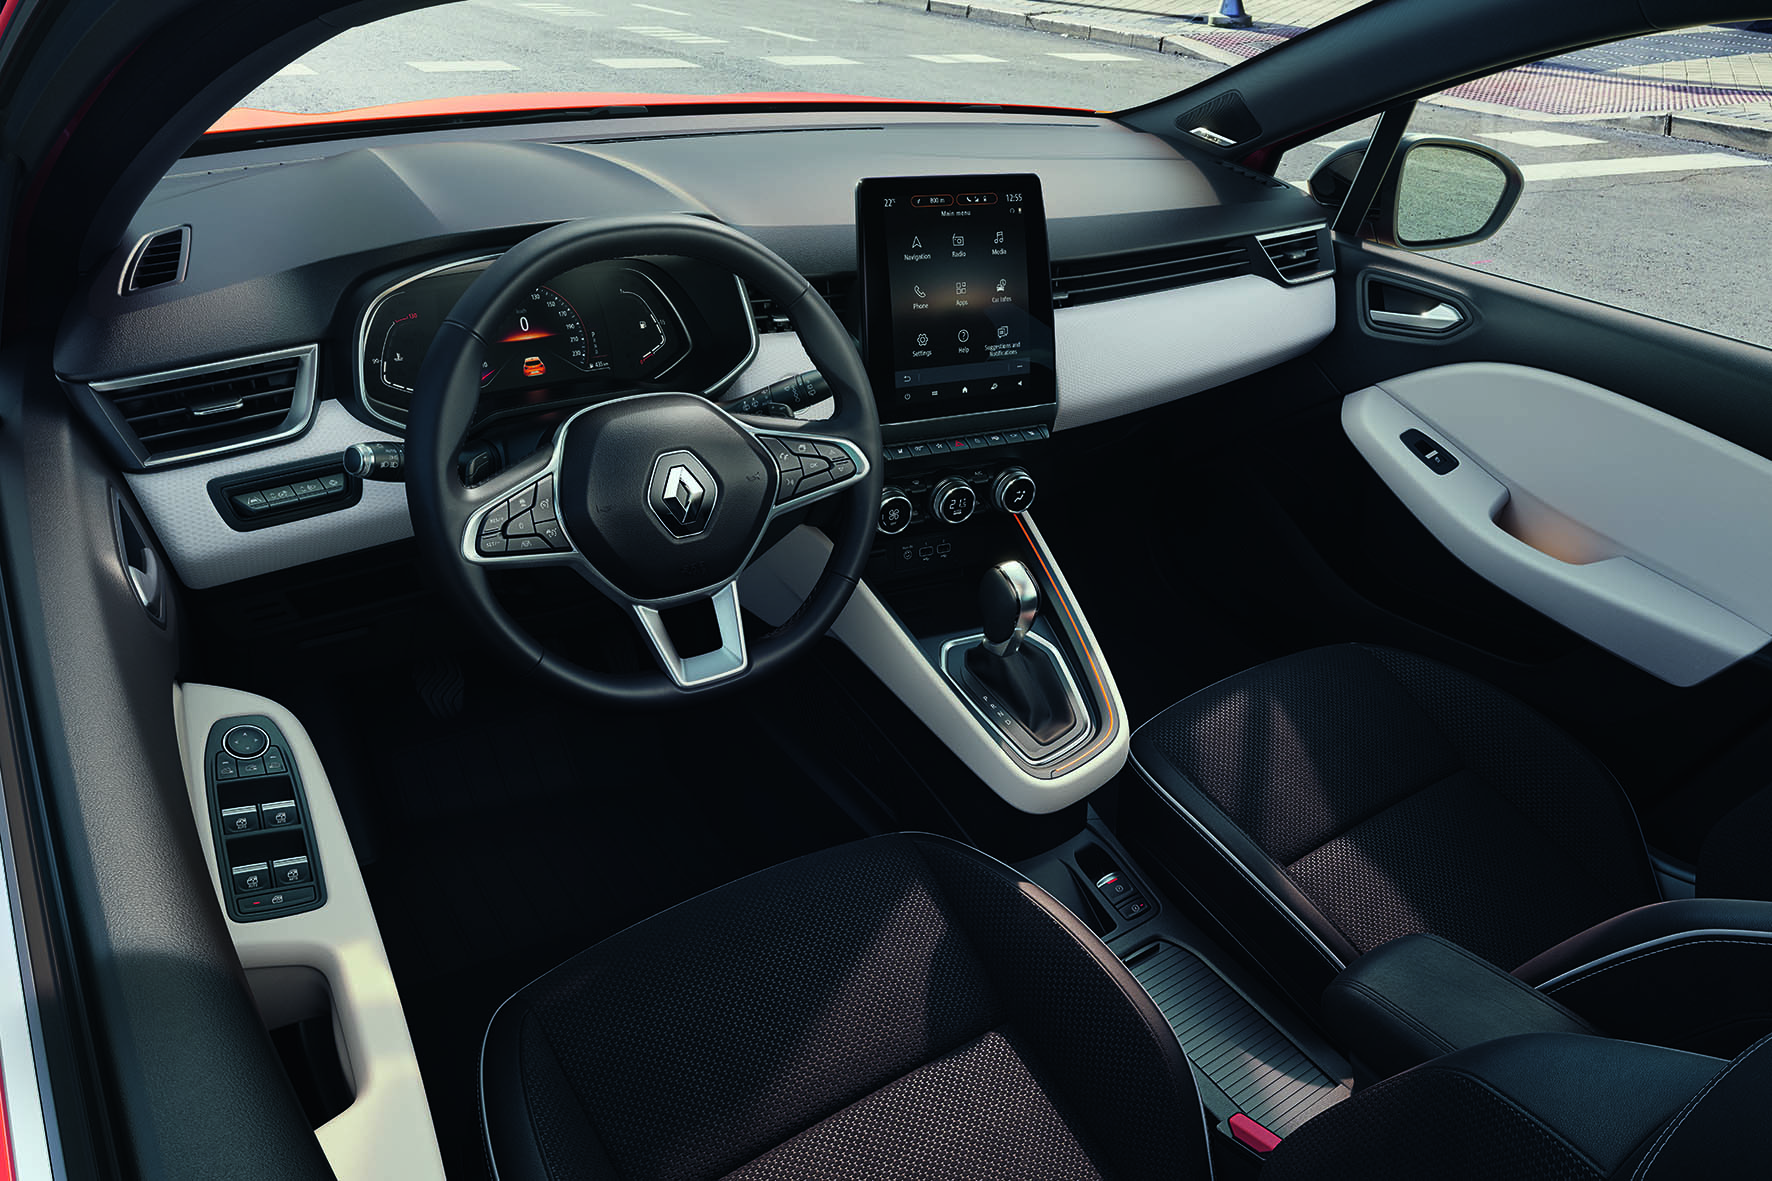 2019 Renault Clio V Interior Revealed, It's A Lot More ...